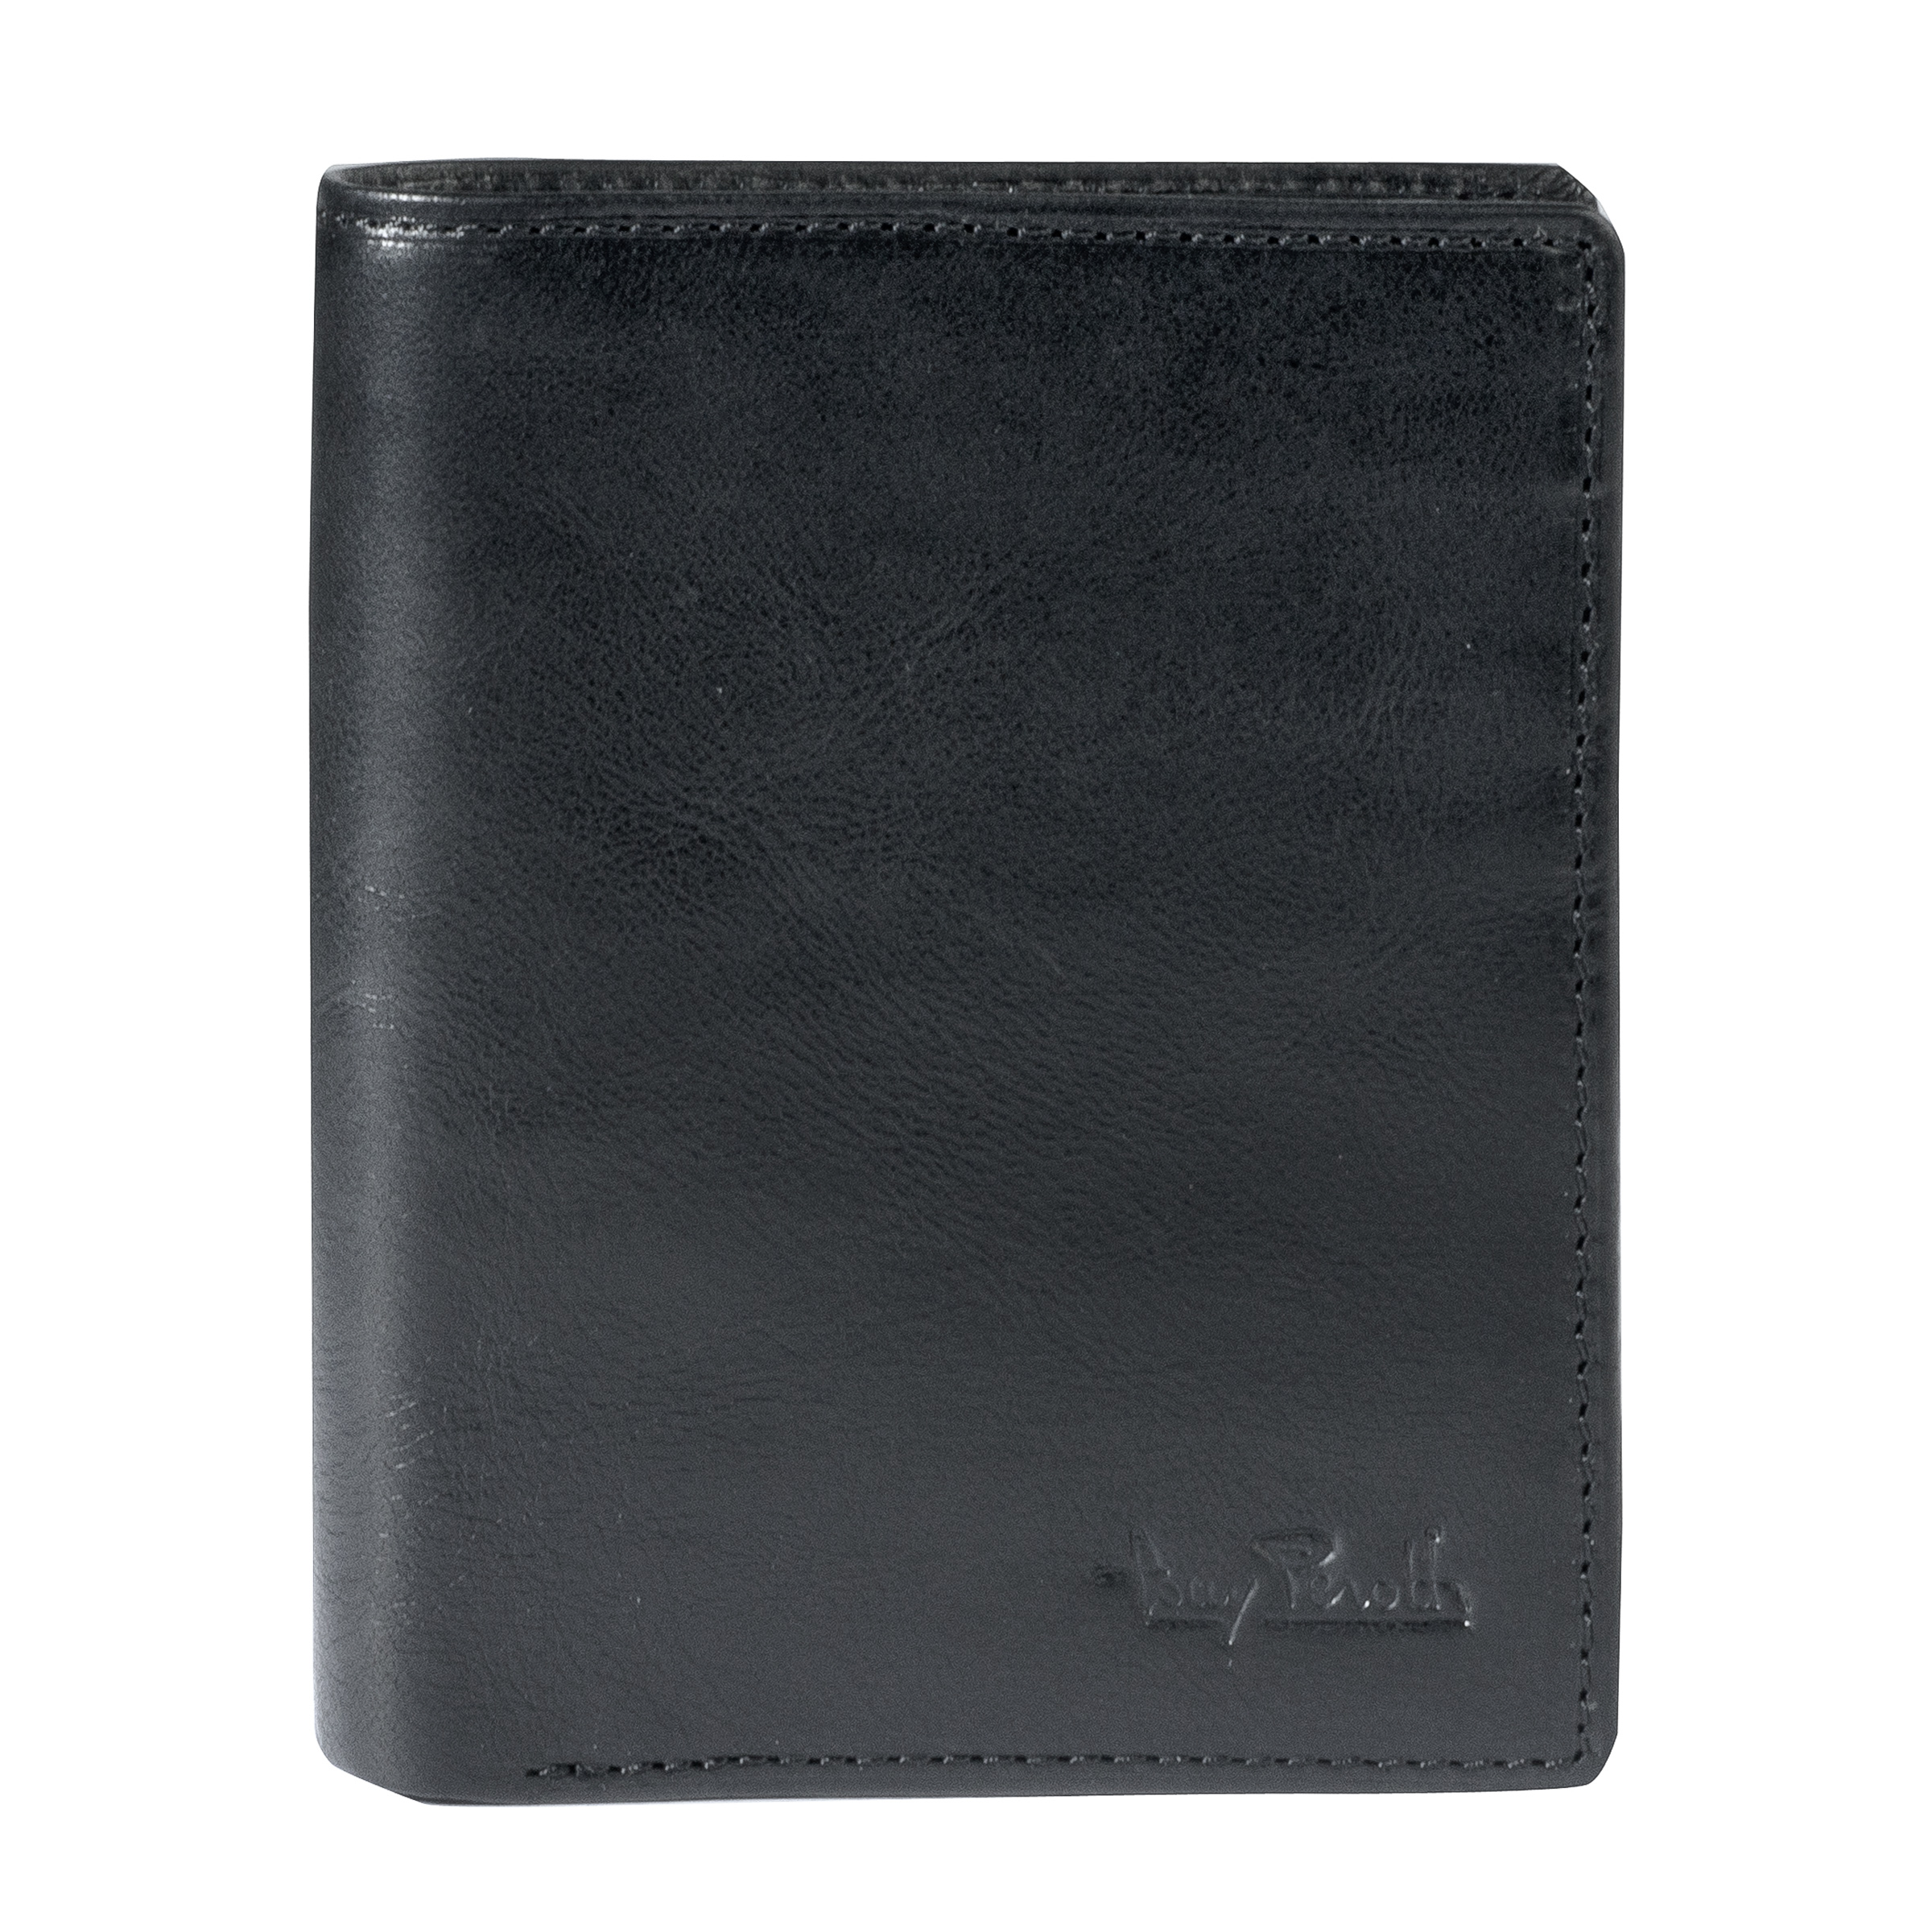 Tony Perotti Vertical billfold with coin pocket and creditcard slots Black